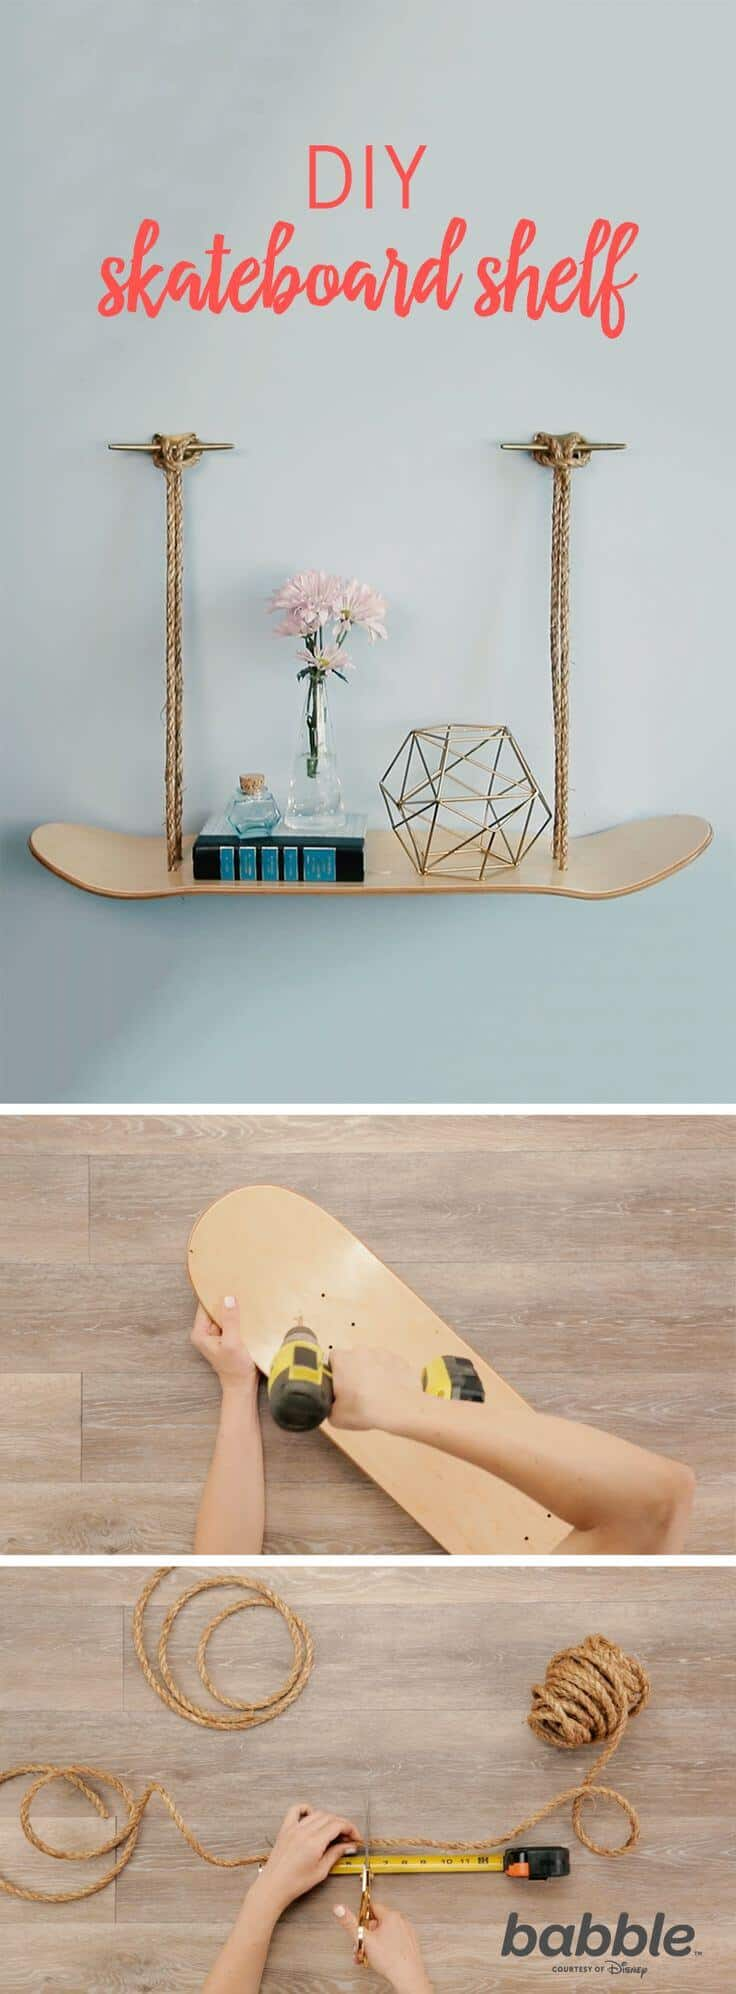 Hanging skateboard and rope shelf